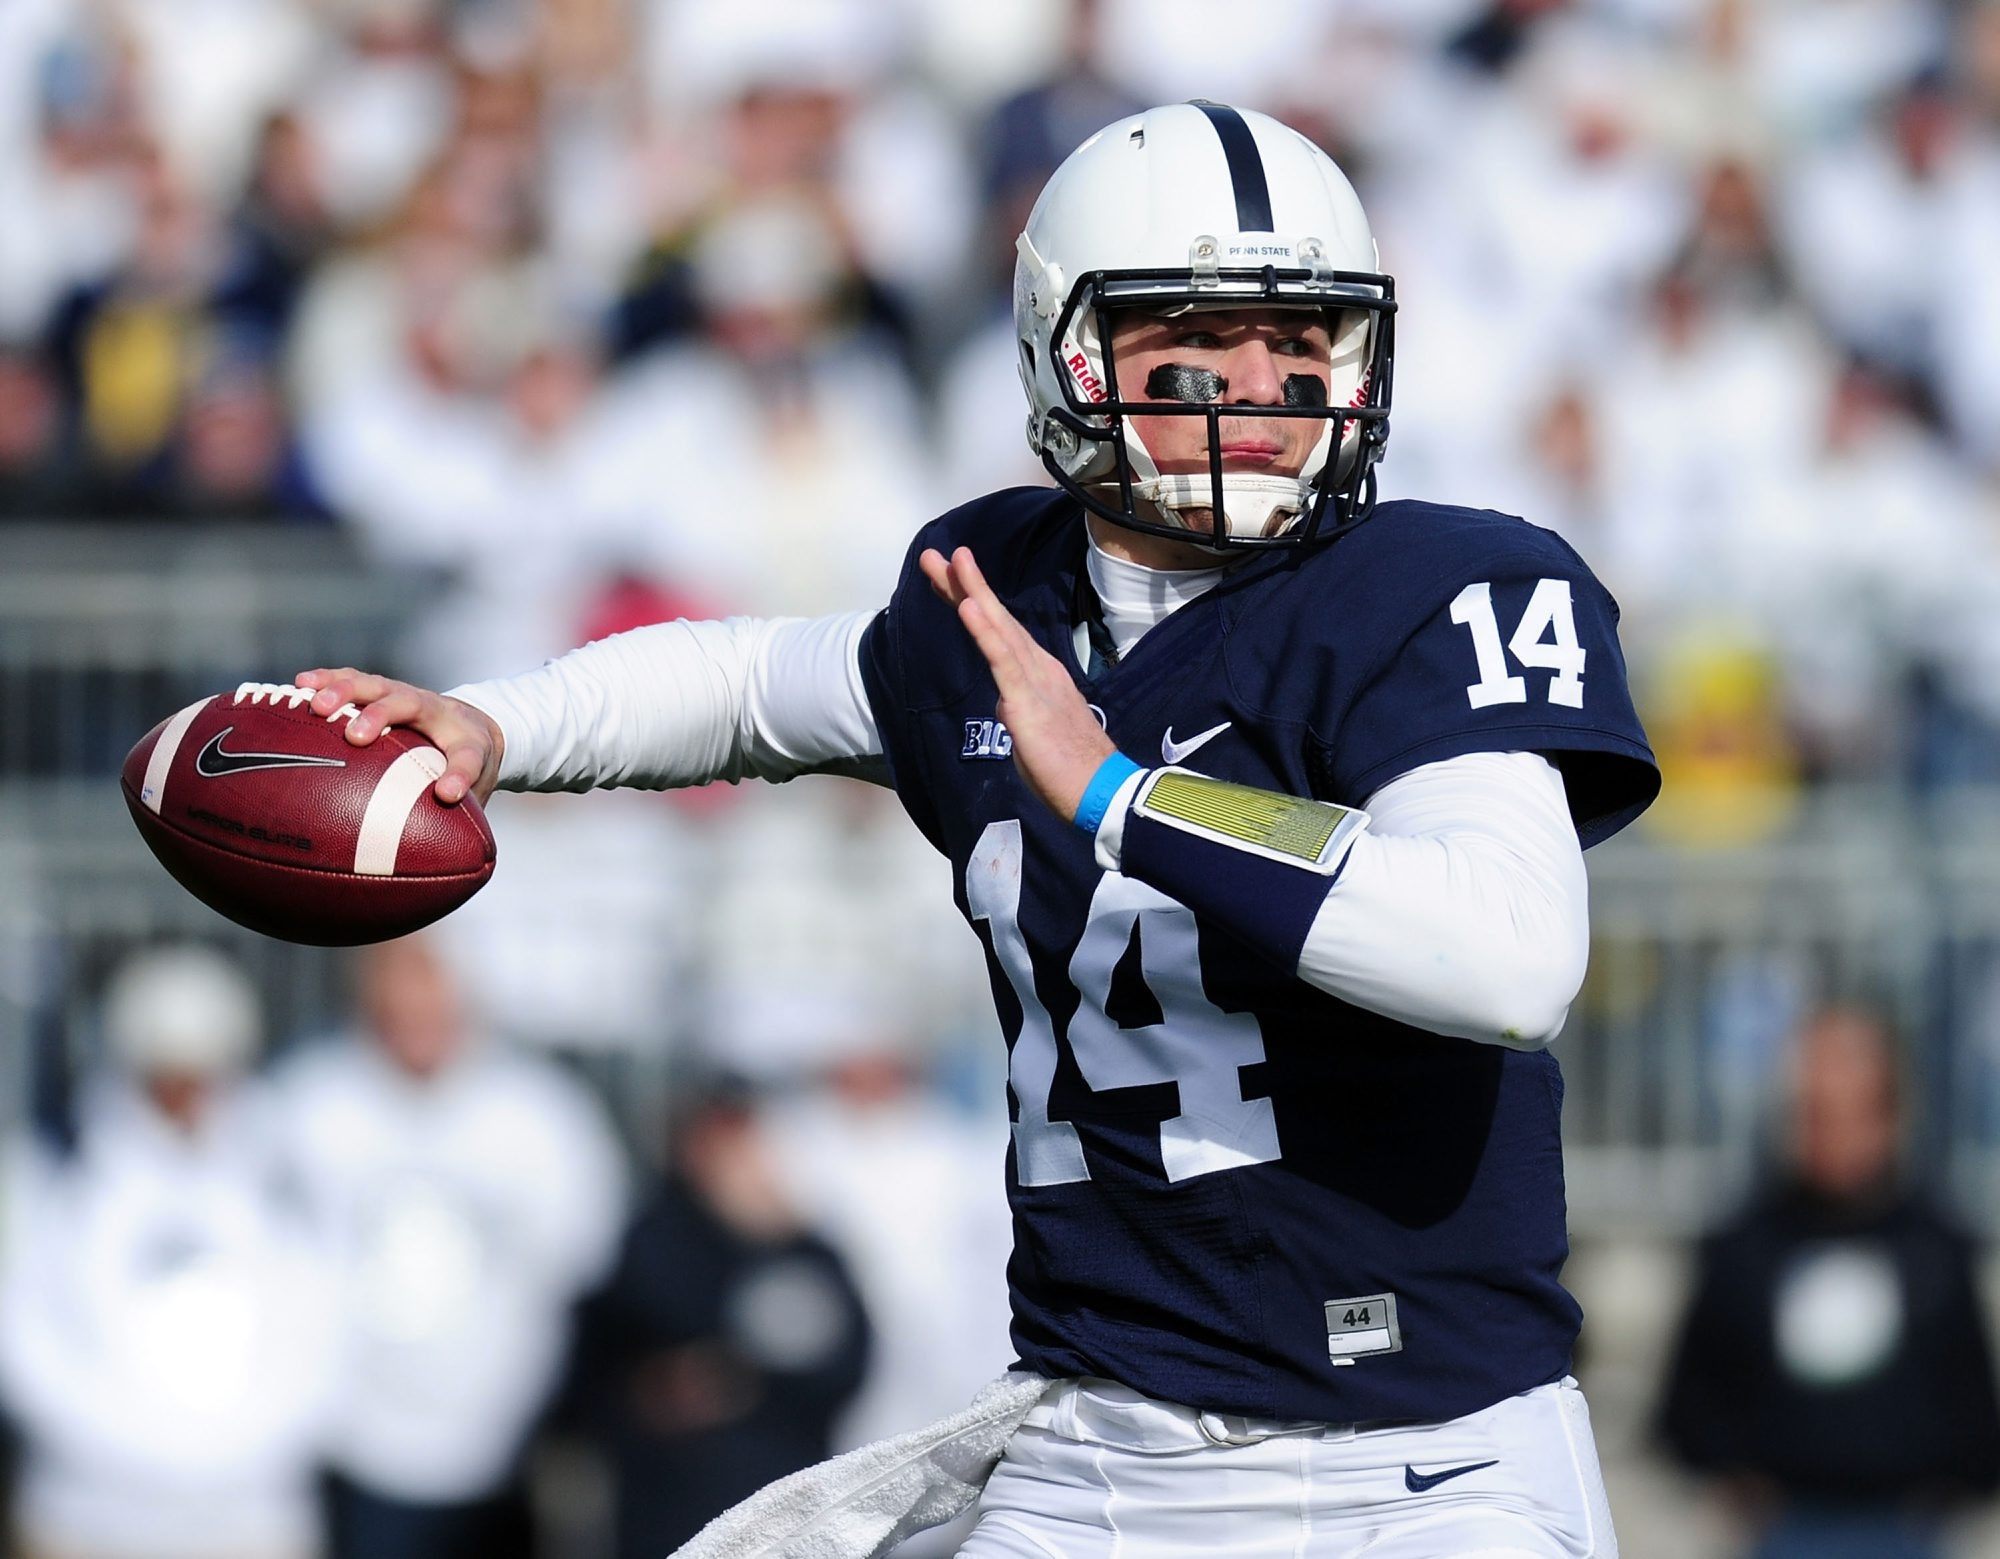 After a strong freshman season, Christian Hackenberg mostly regressed as a quarterback at Penn State the next two seasons.